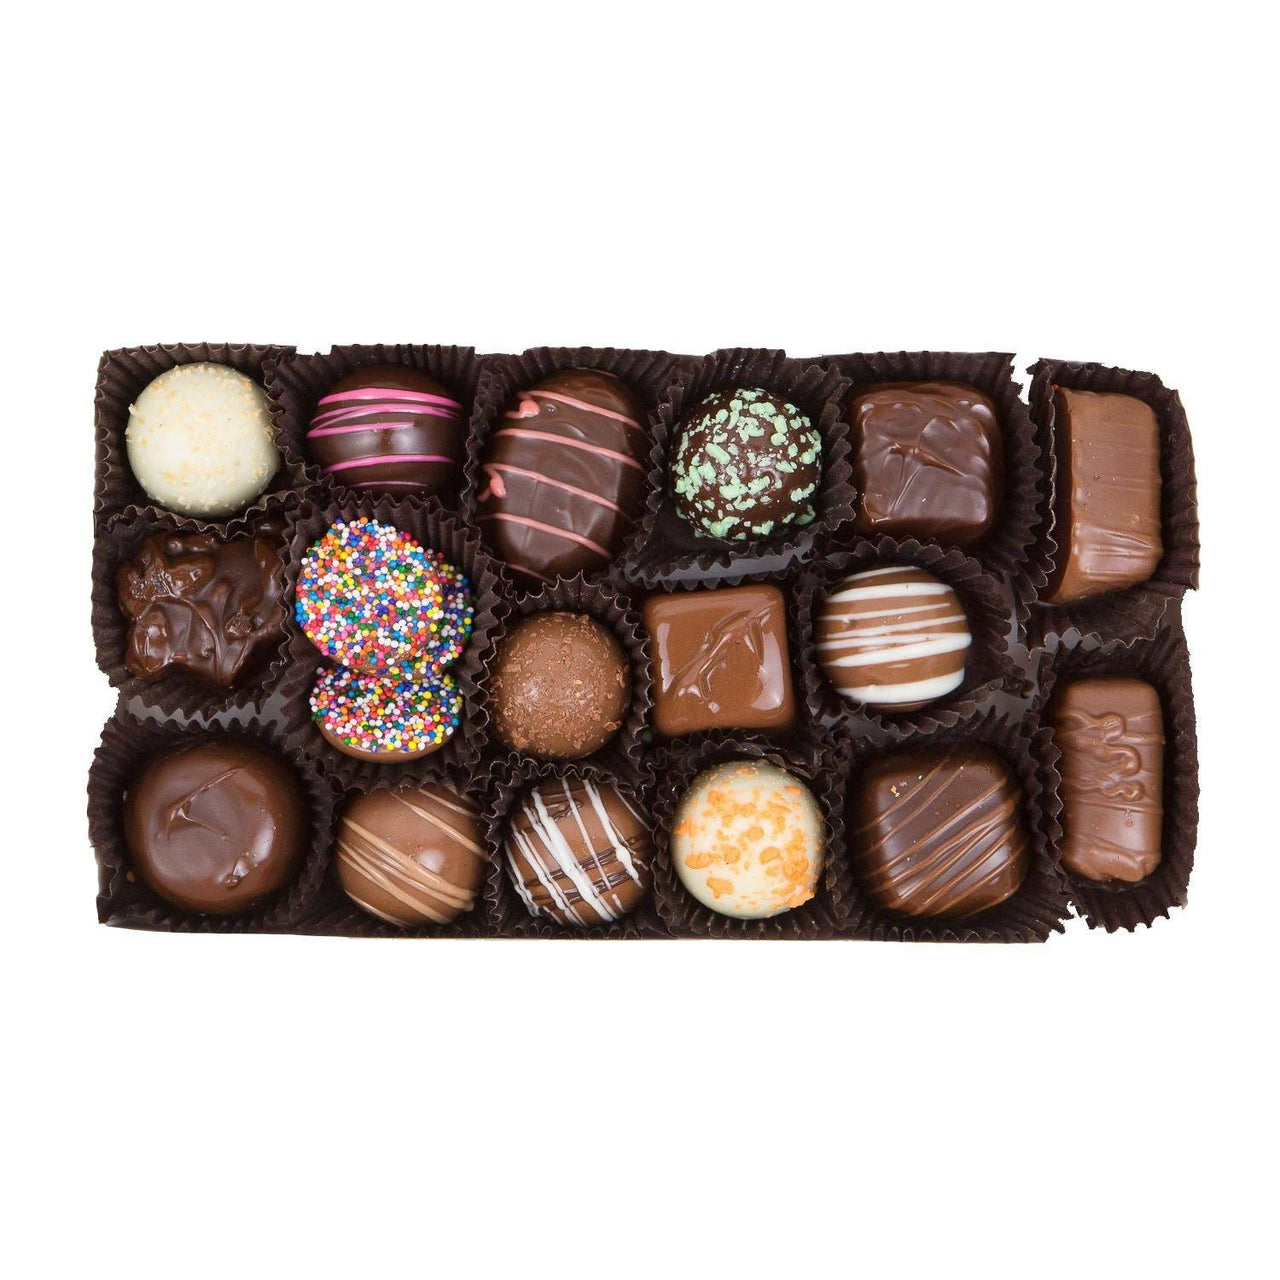 Popular Gifts 2019 - Chocolate Assortment Gift Box - Jackie's Chocolate (4336366420083)